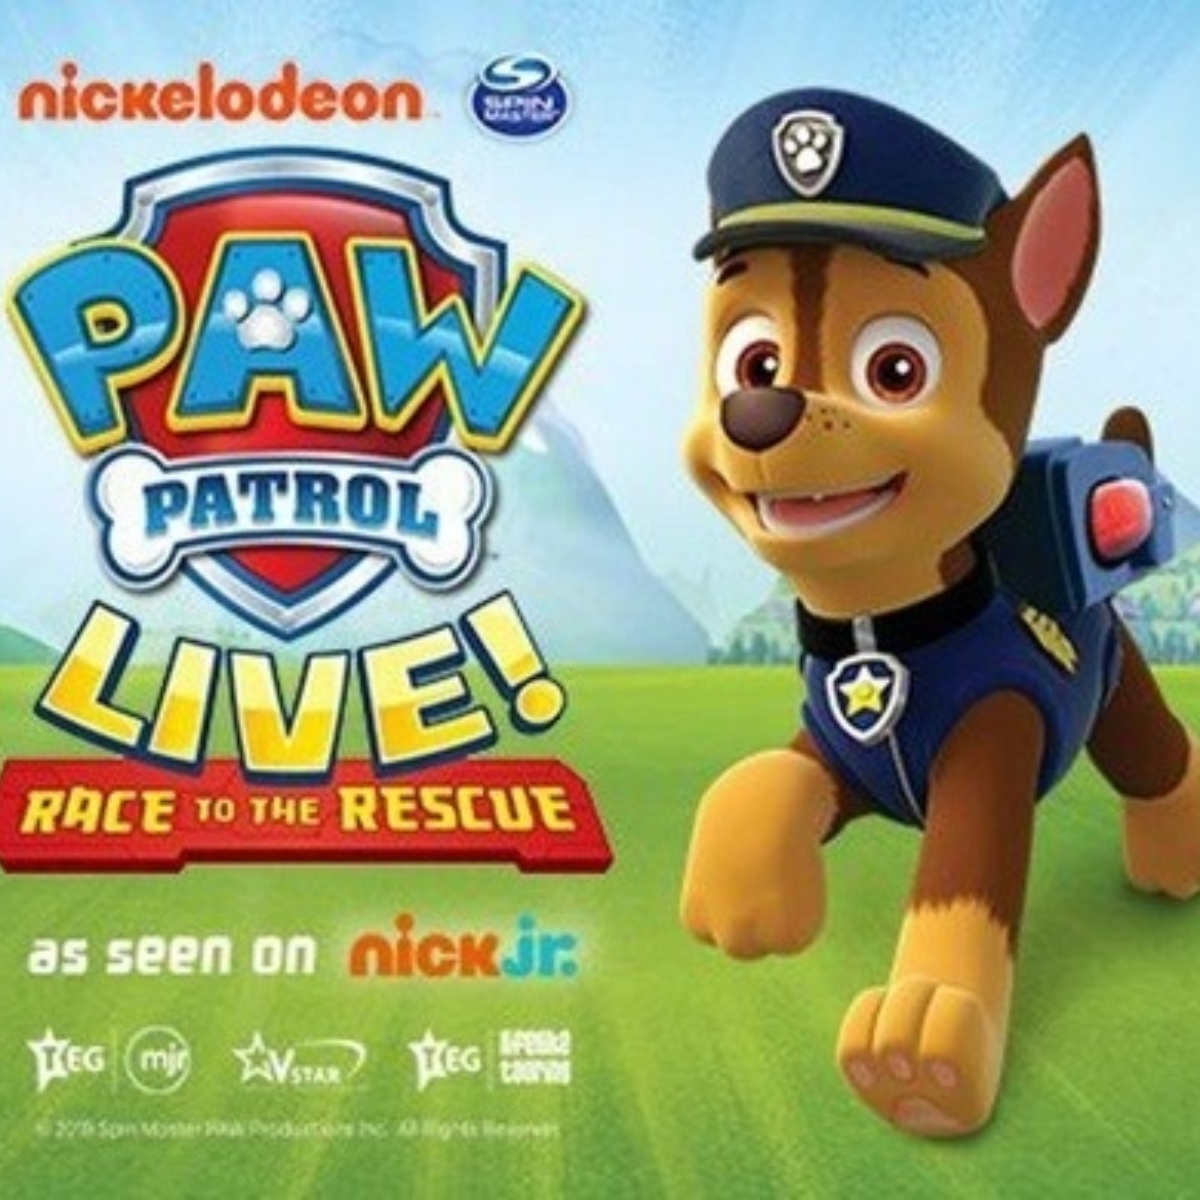 PAW PATROL LIVE! - Race to the Rescue (Leeds) Images